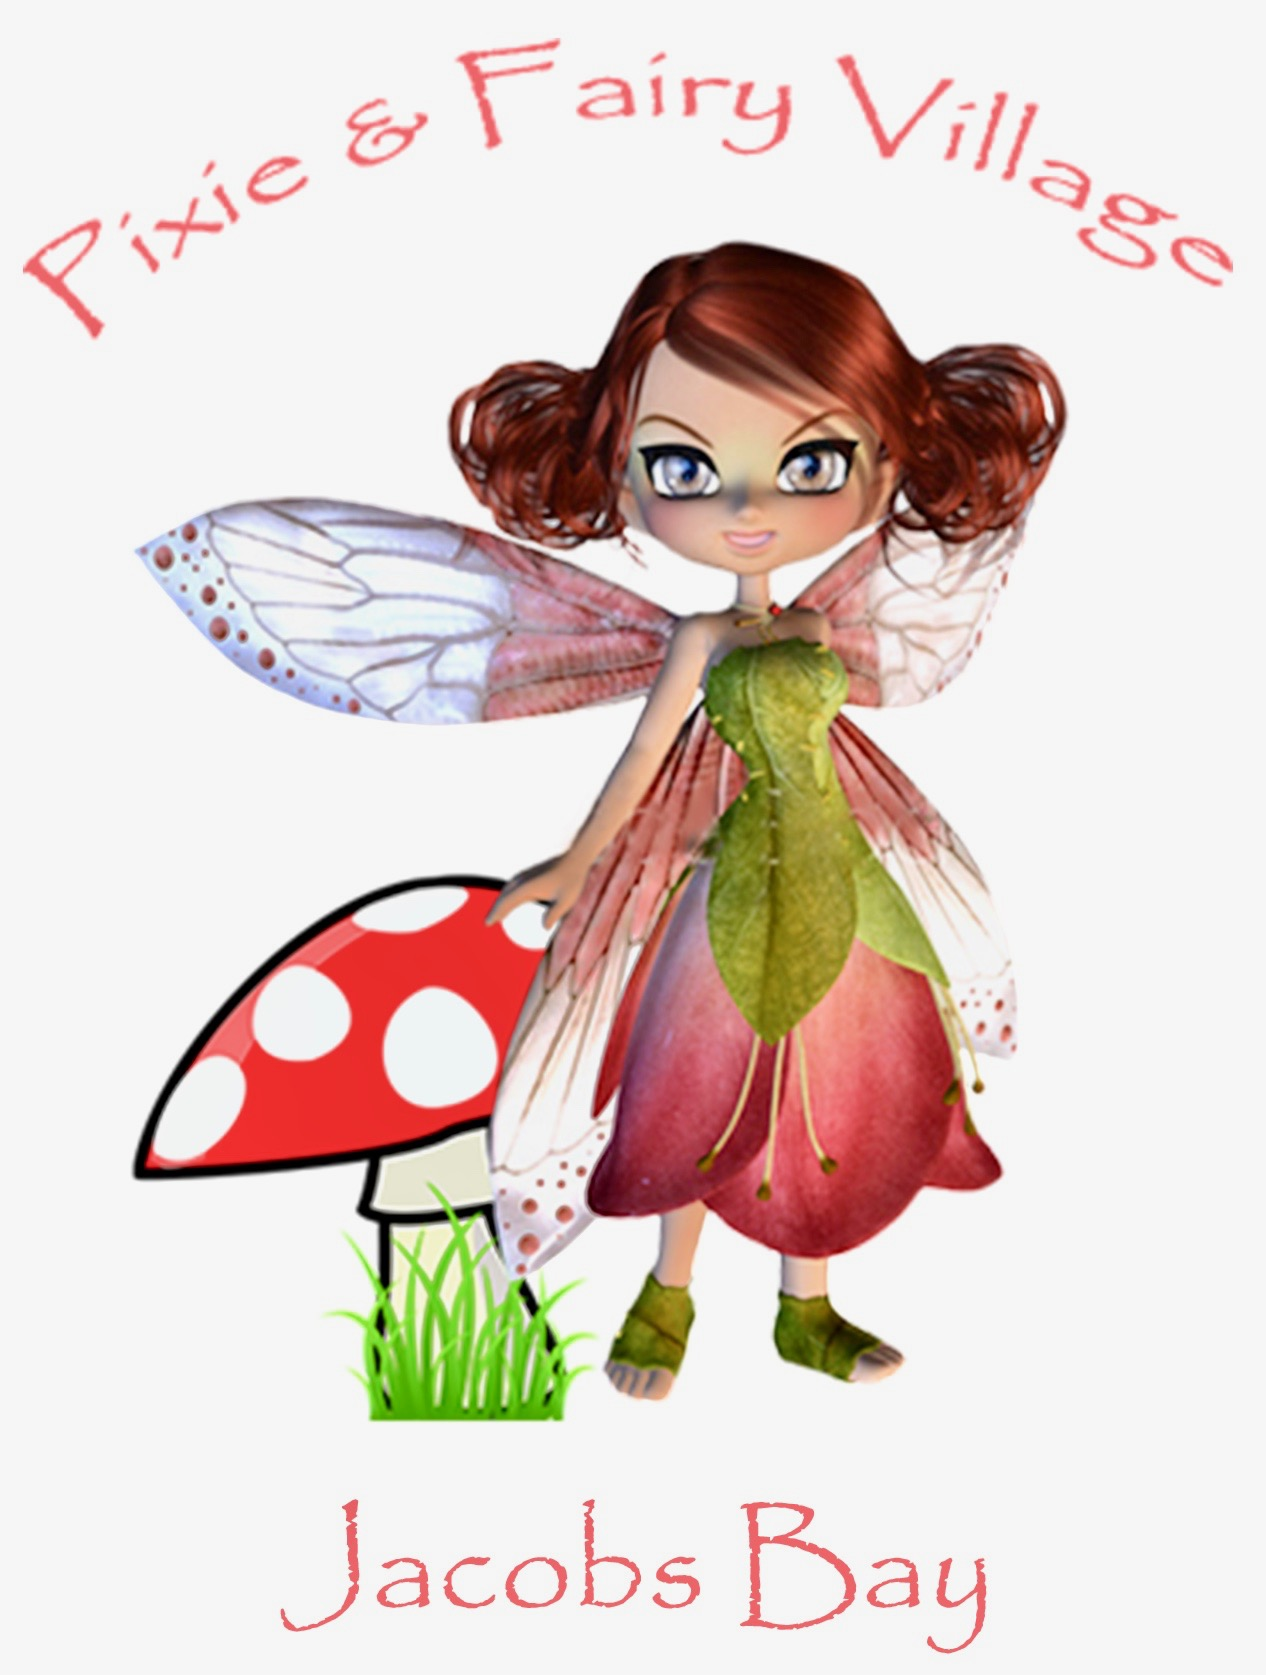 The Pixie and Fairy Village